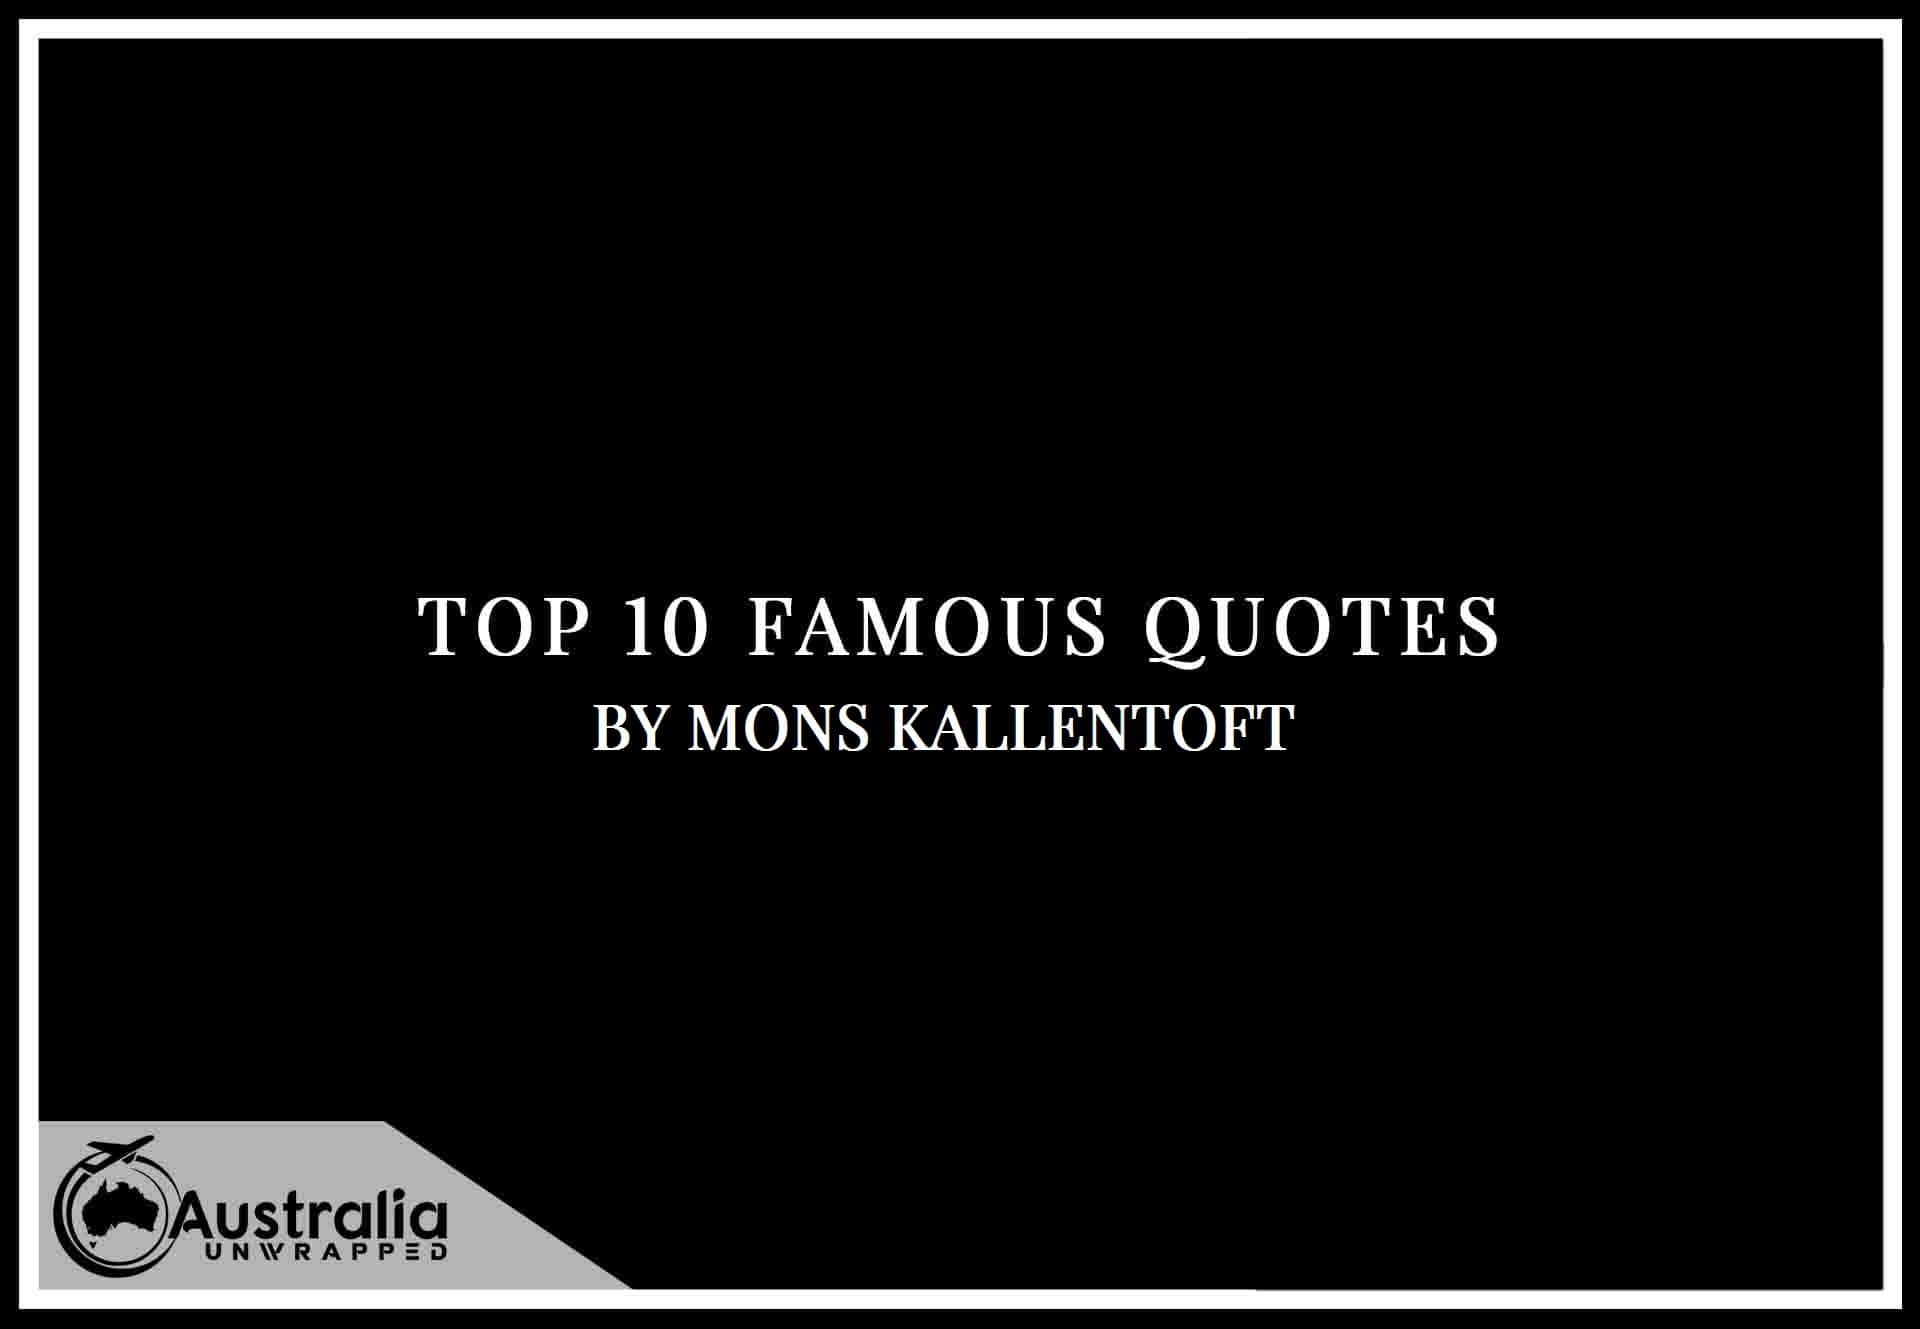 Mons Kallentoft's Top 10 Popular and Famous Quotes